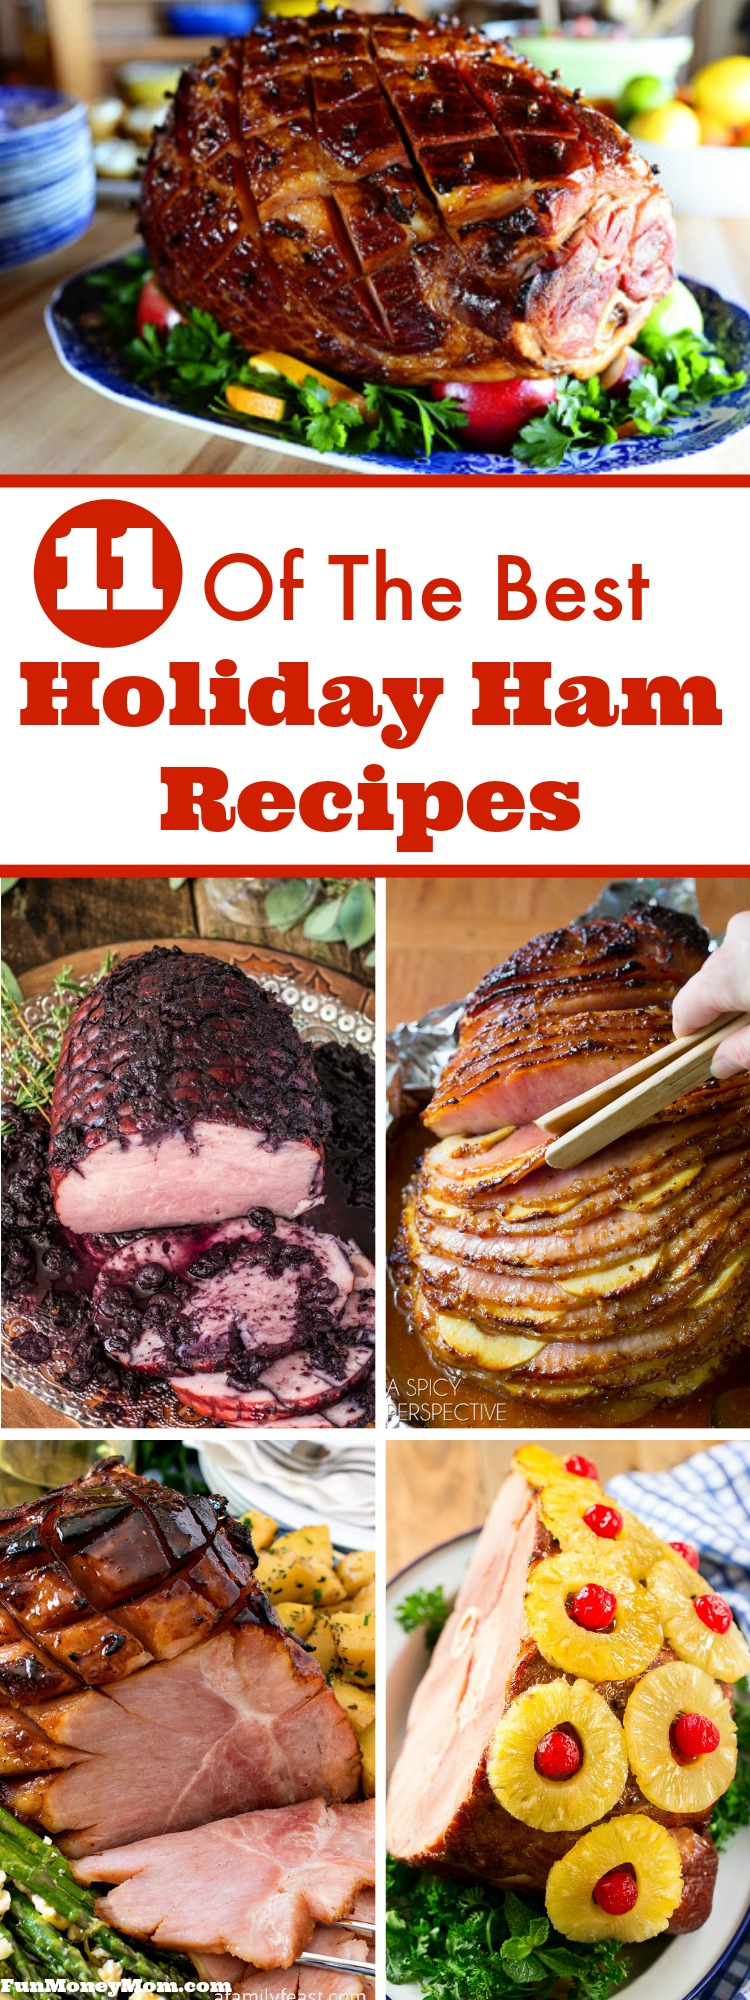 Have you been searching high and low for recipes, trying to find just the right one for your holiday dinner? Any of these mouthwatering holiday hams will be perfect...the hard part's just going to be narrowing down your choices!